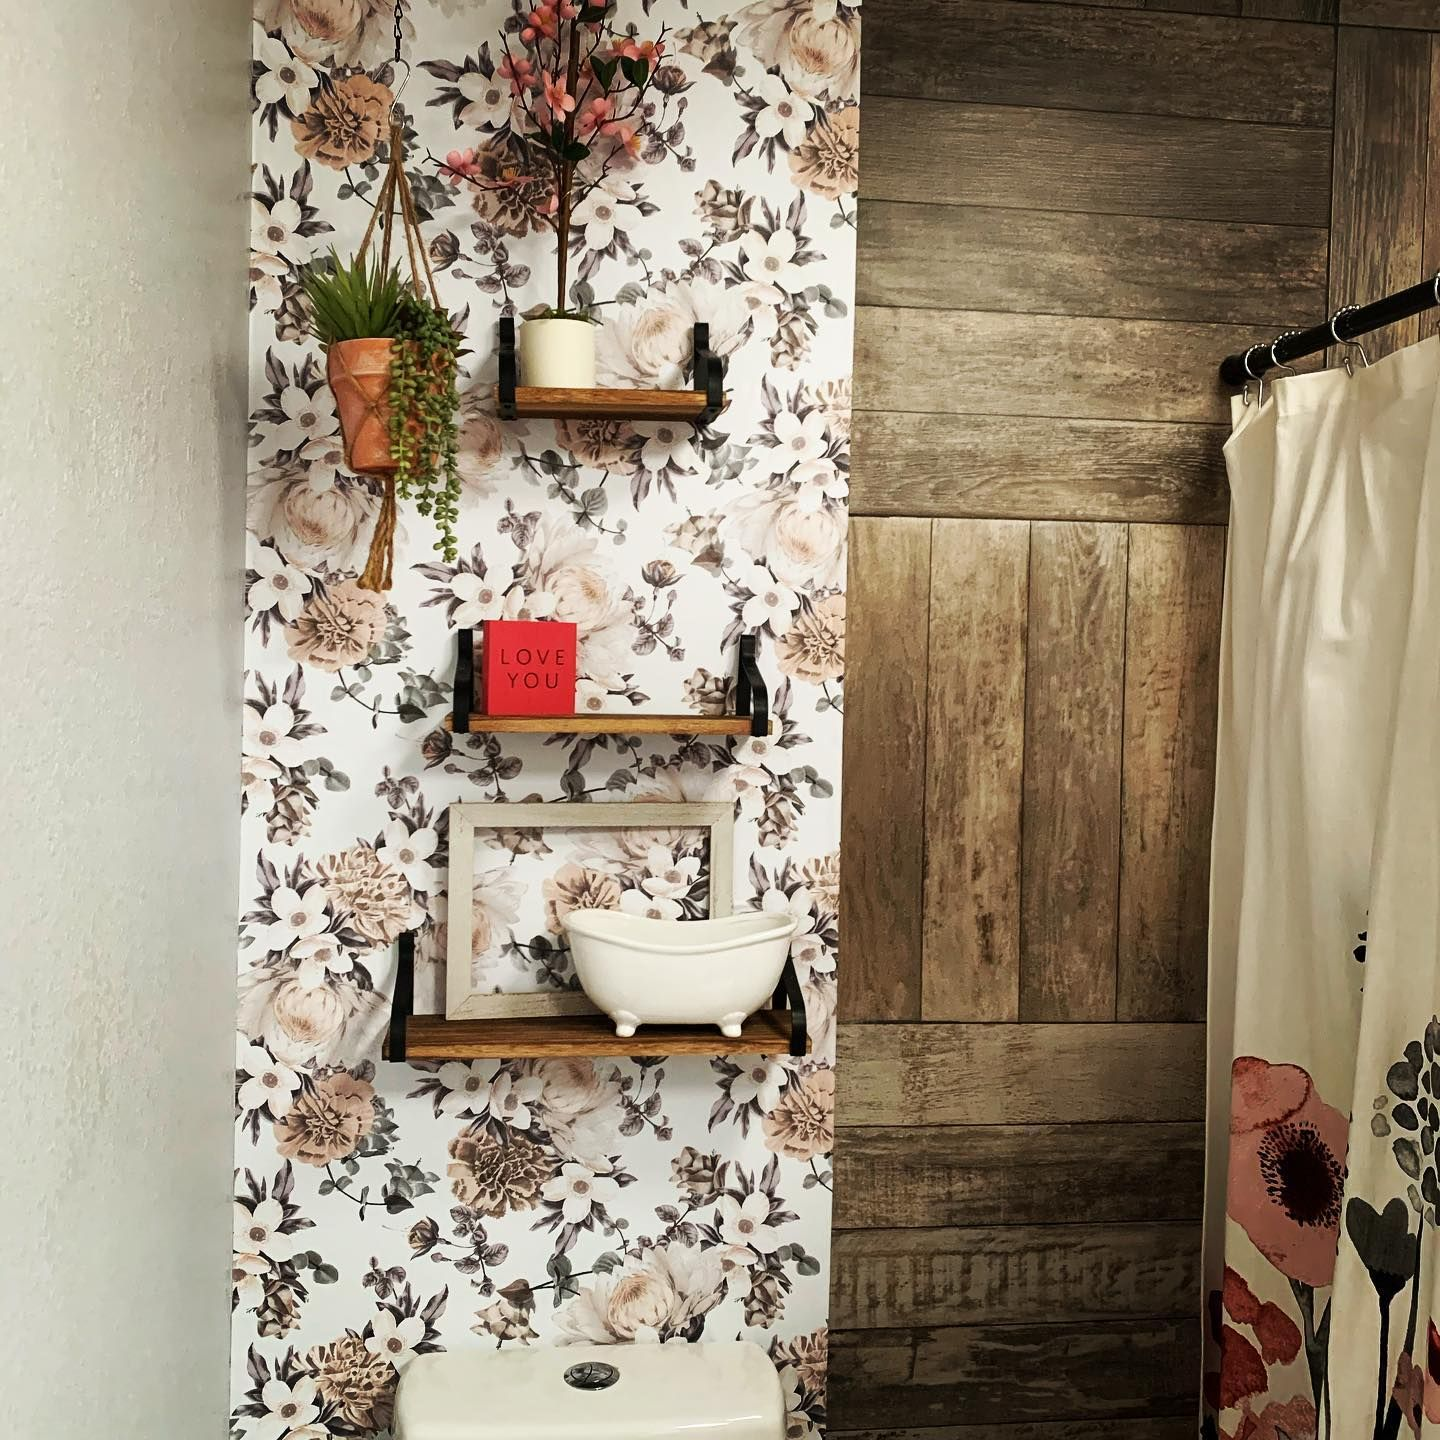 Refreshing Bathroom Wallpaper Ideas To Try In 2021 Removable Wallpaper Bathroom Remodel Idea Bathroom Wallpaper